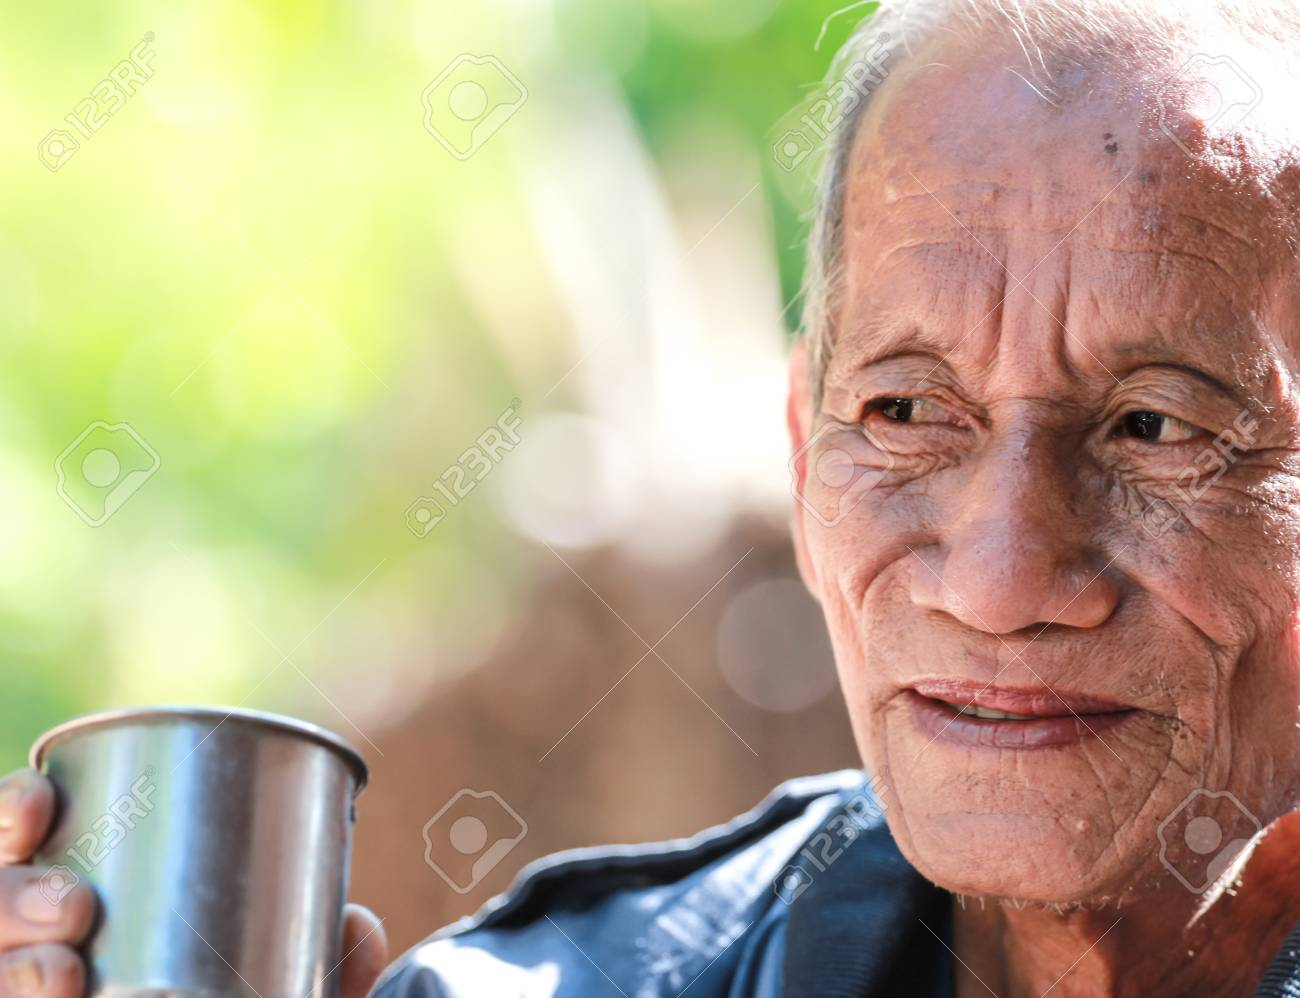 an aged cheerful old man holding a cup of coffee Stock Photo - 17533149